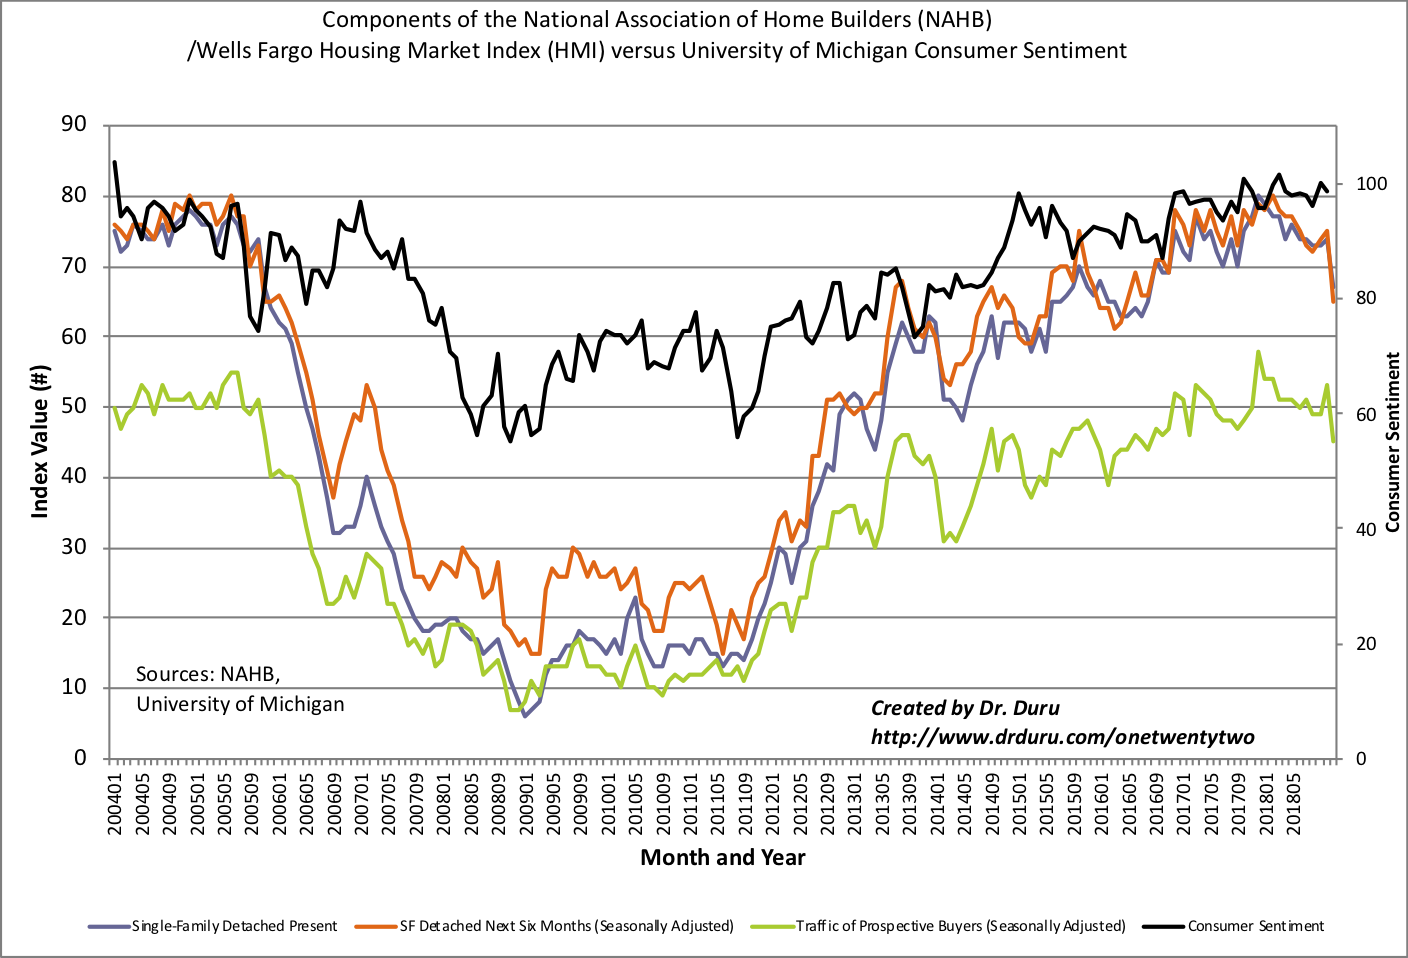 The components of home builder sentiment fell sharply across the board. The Housing Market Index (HMI) looks like it hit a lasting peak late last year.